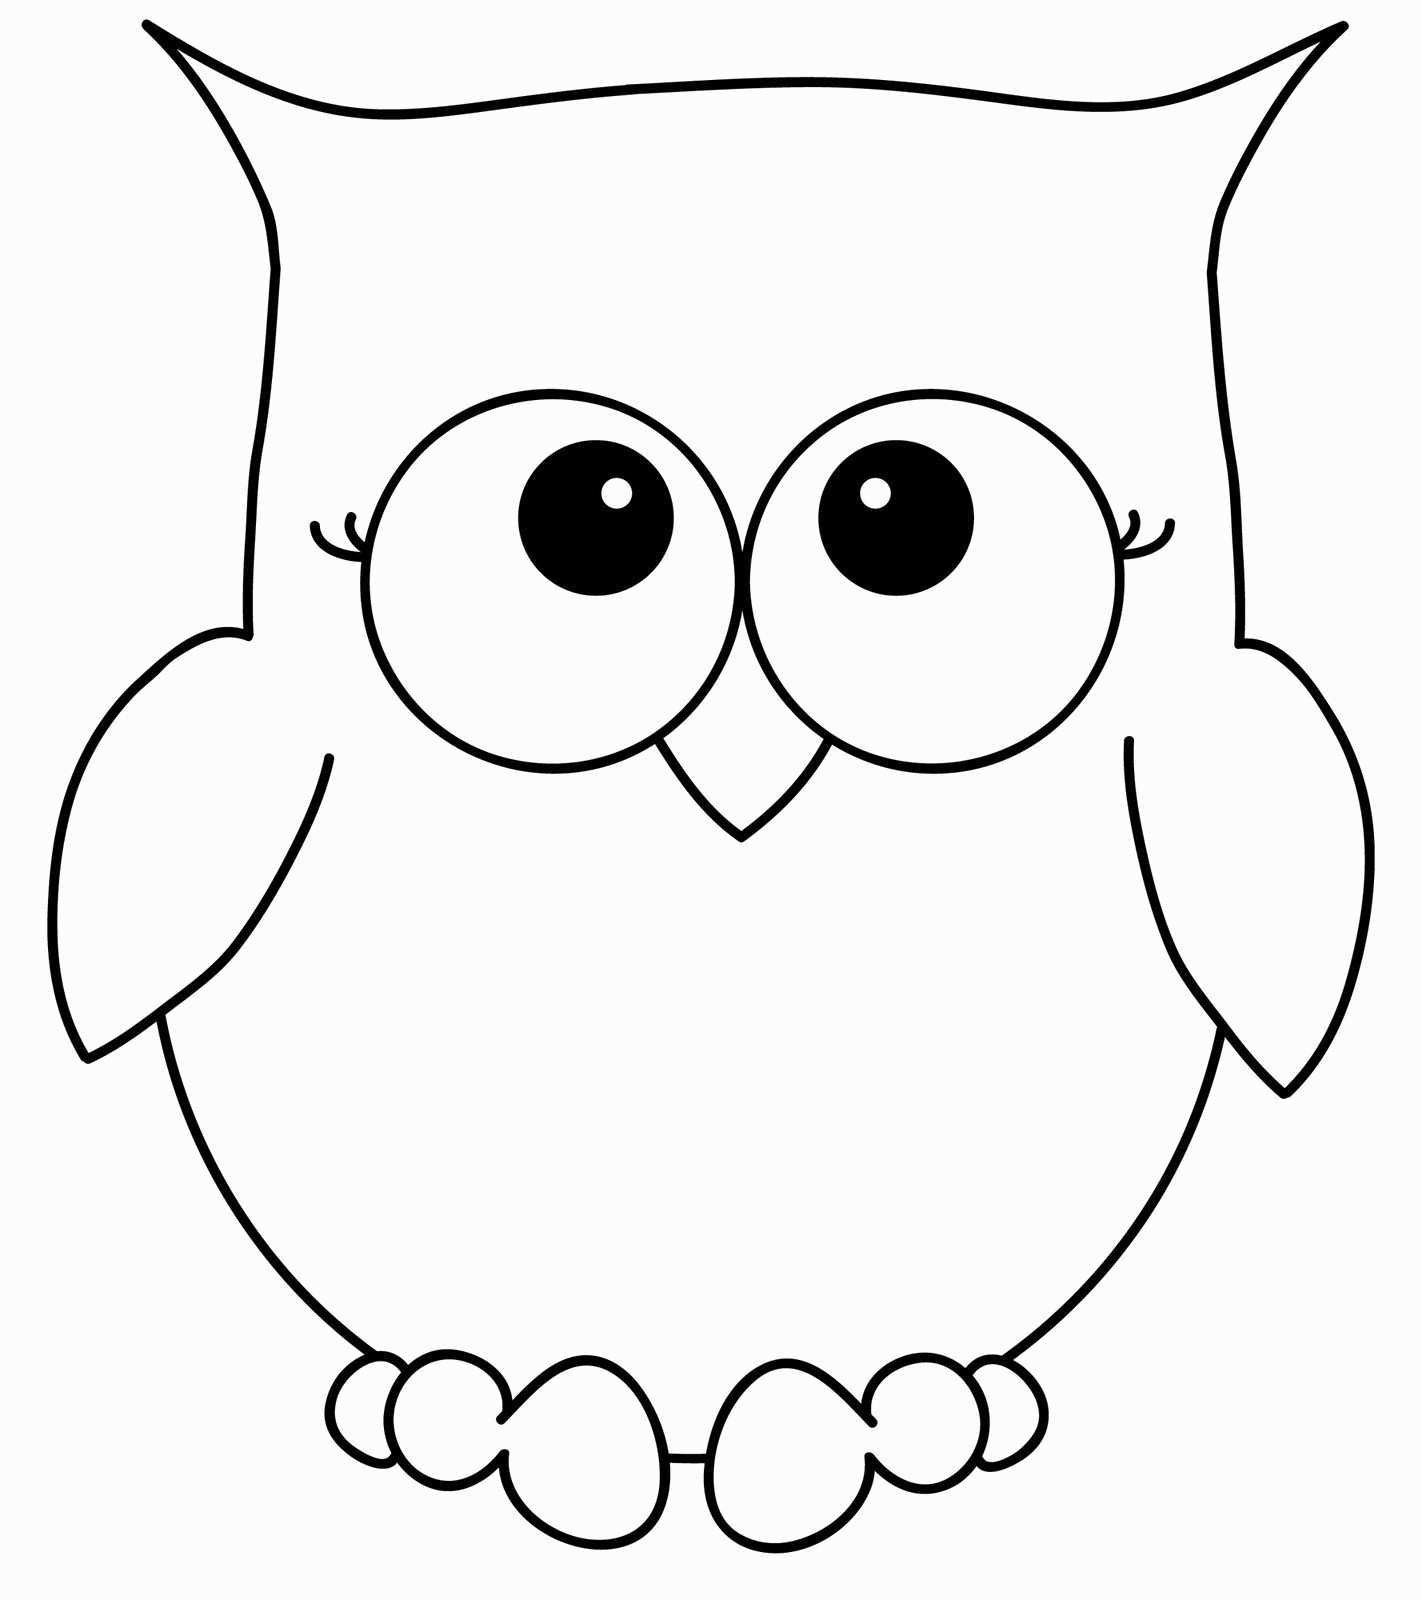 Wonderful Image Of Owls Coloring Pages Davemelillo Com Owl Coloring Pages Owl Patterns Halloween Coloring Pages